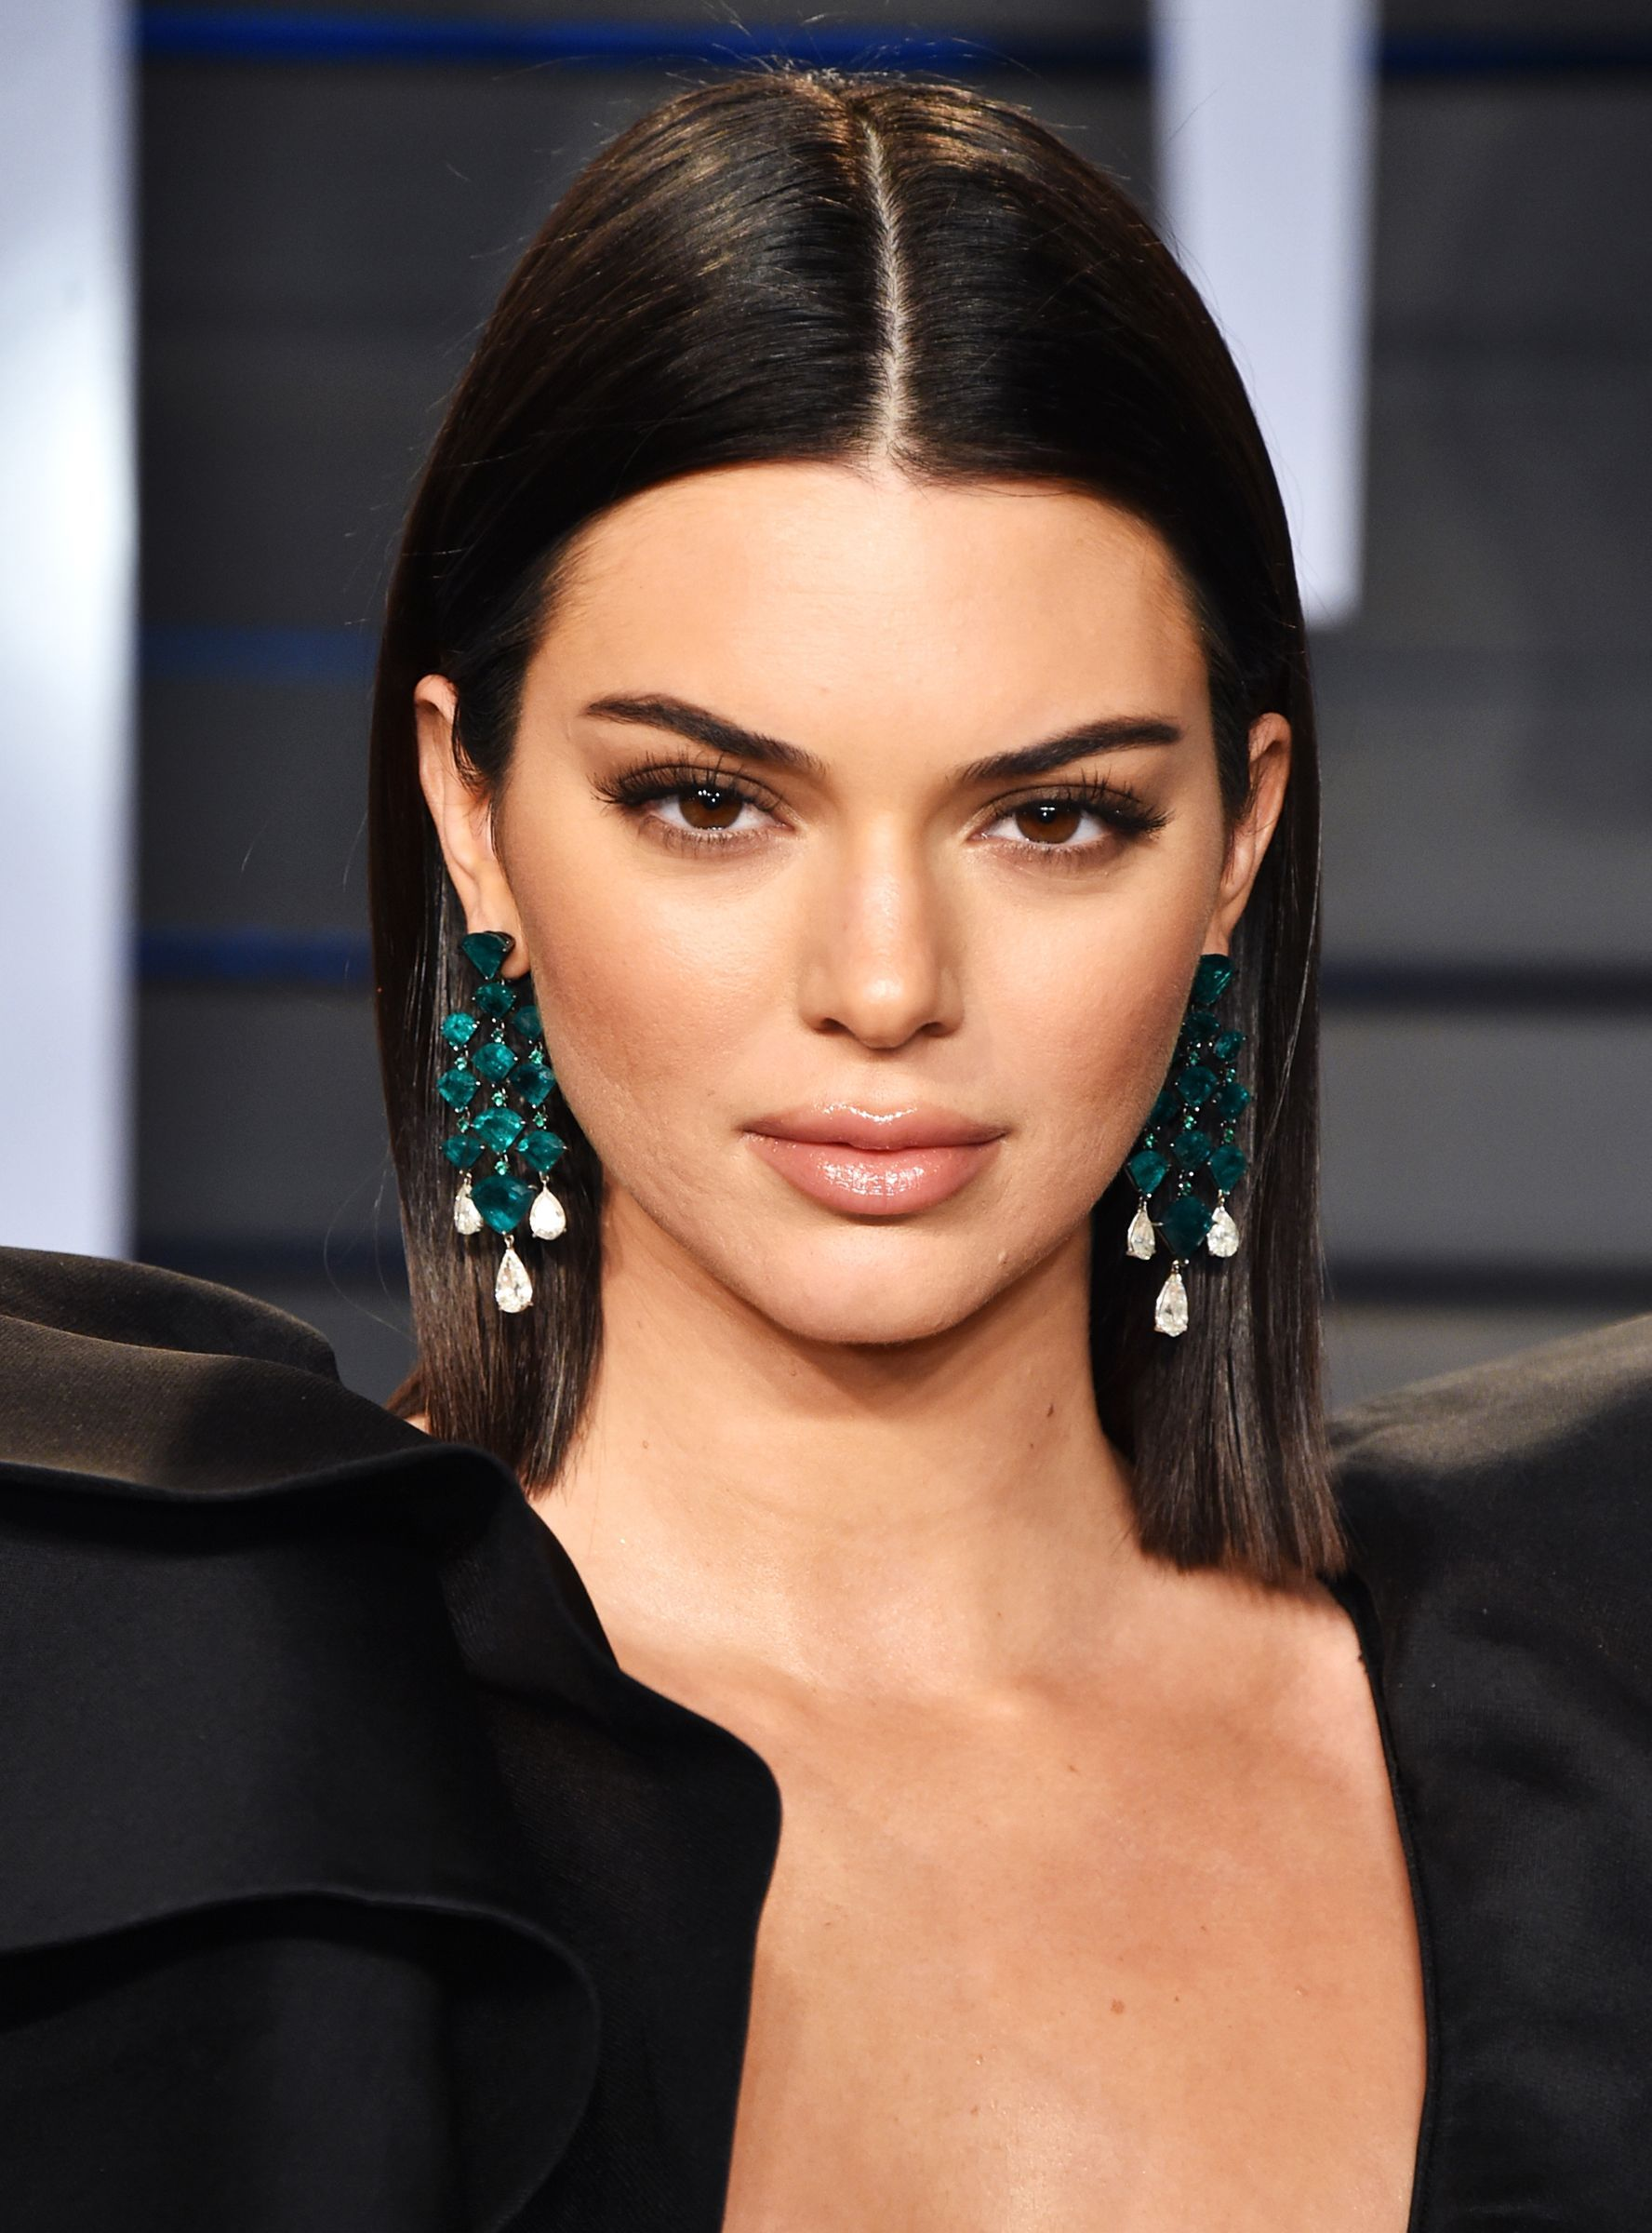 ec65532f71 Kendall Jenner Finally Explains The Story Behind Her Lip Tattoo http   r29.